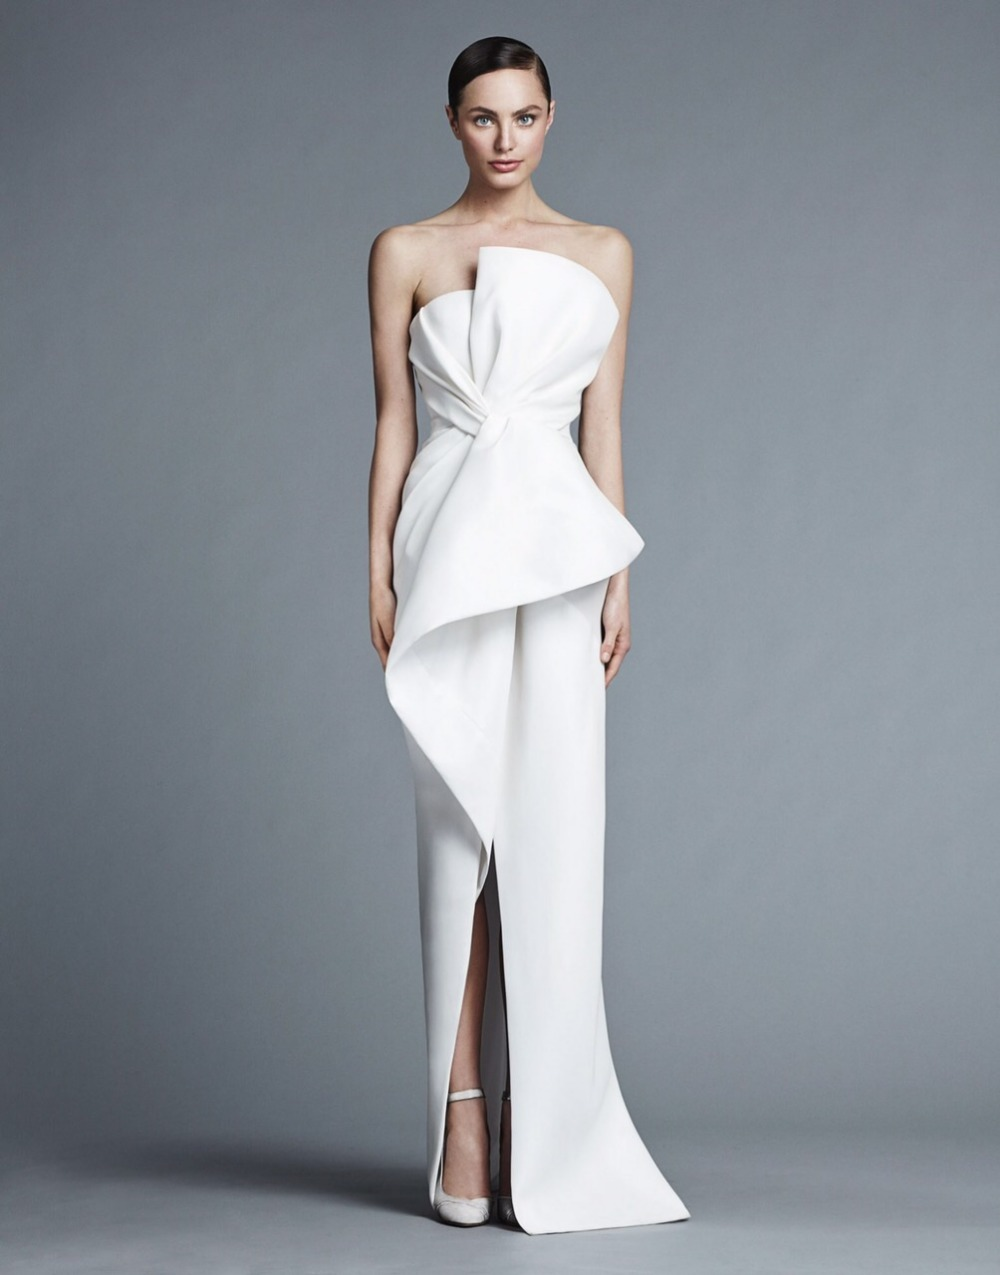 High Quality Long White Strapless Prom Dresses-Buy Cheap Long ...